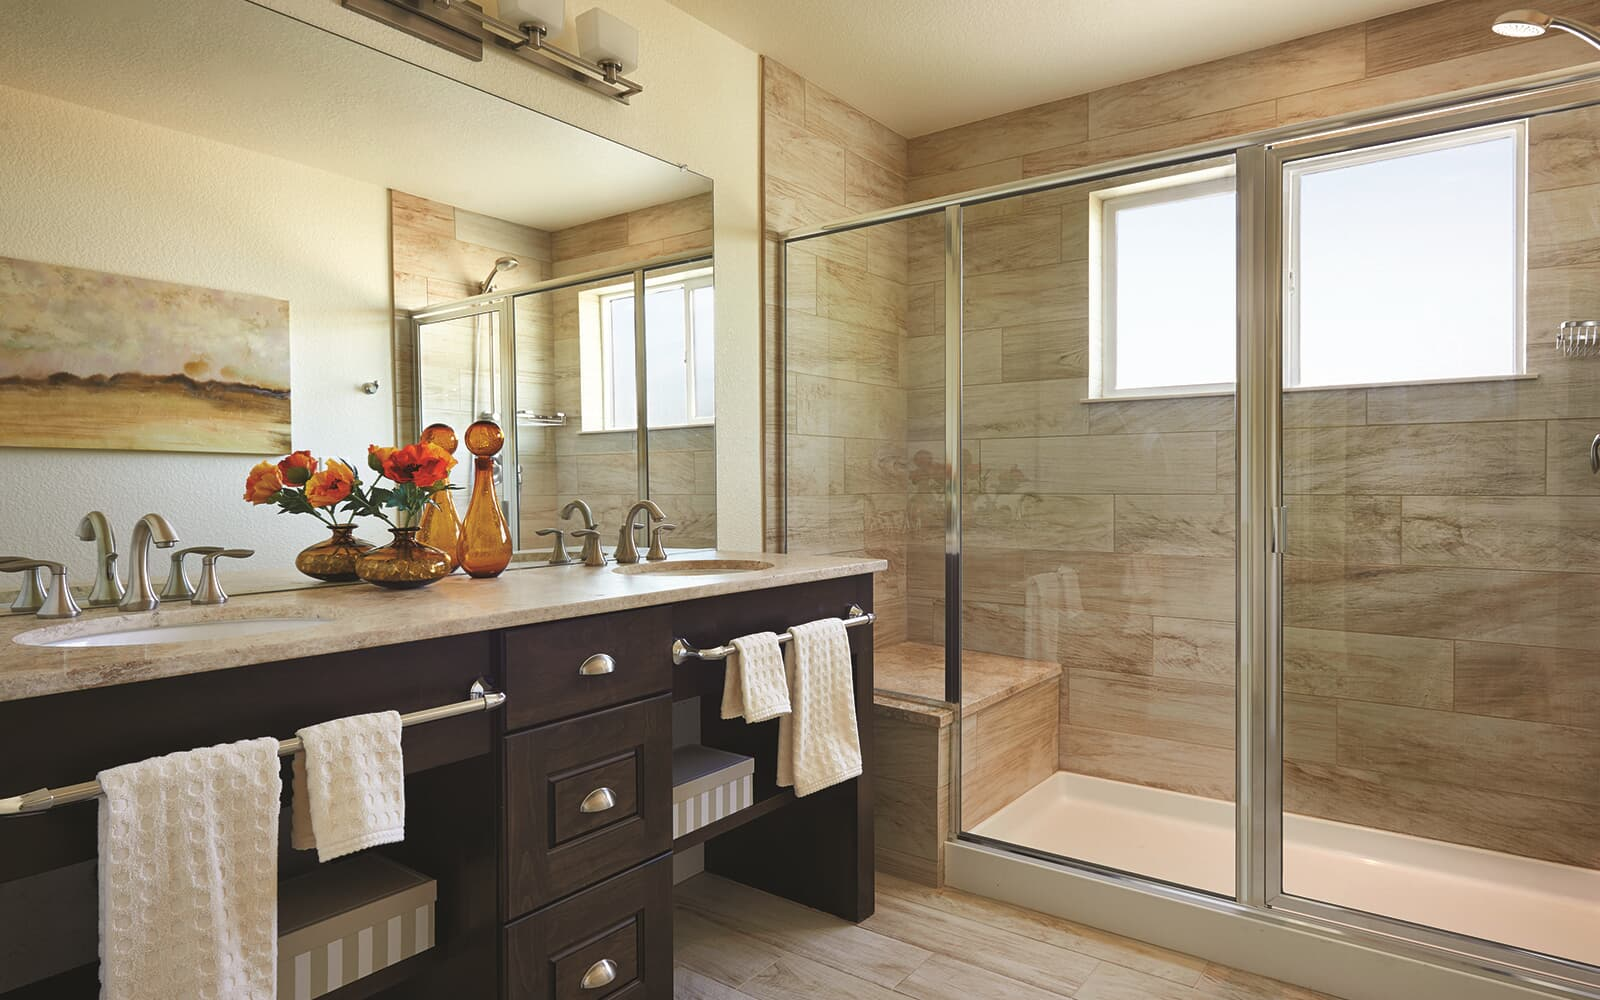 Freestyle-Six-Model-Interior-Master-Bathroom-Brighton-Crossings-Denver-Colorado